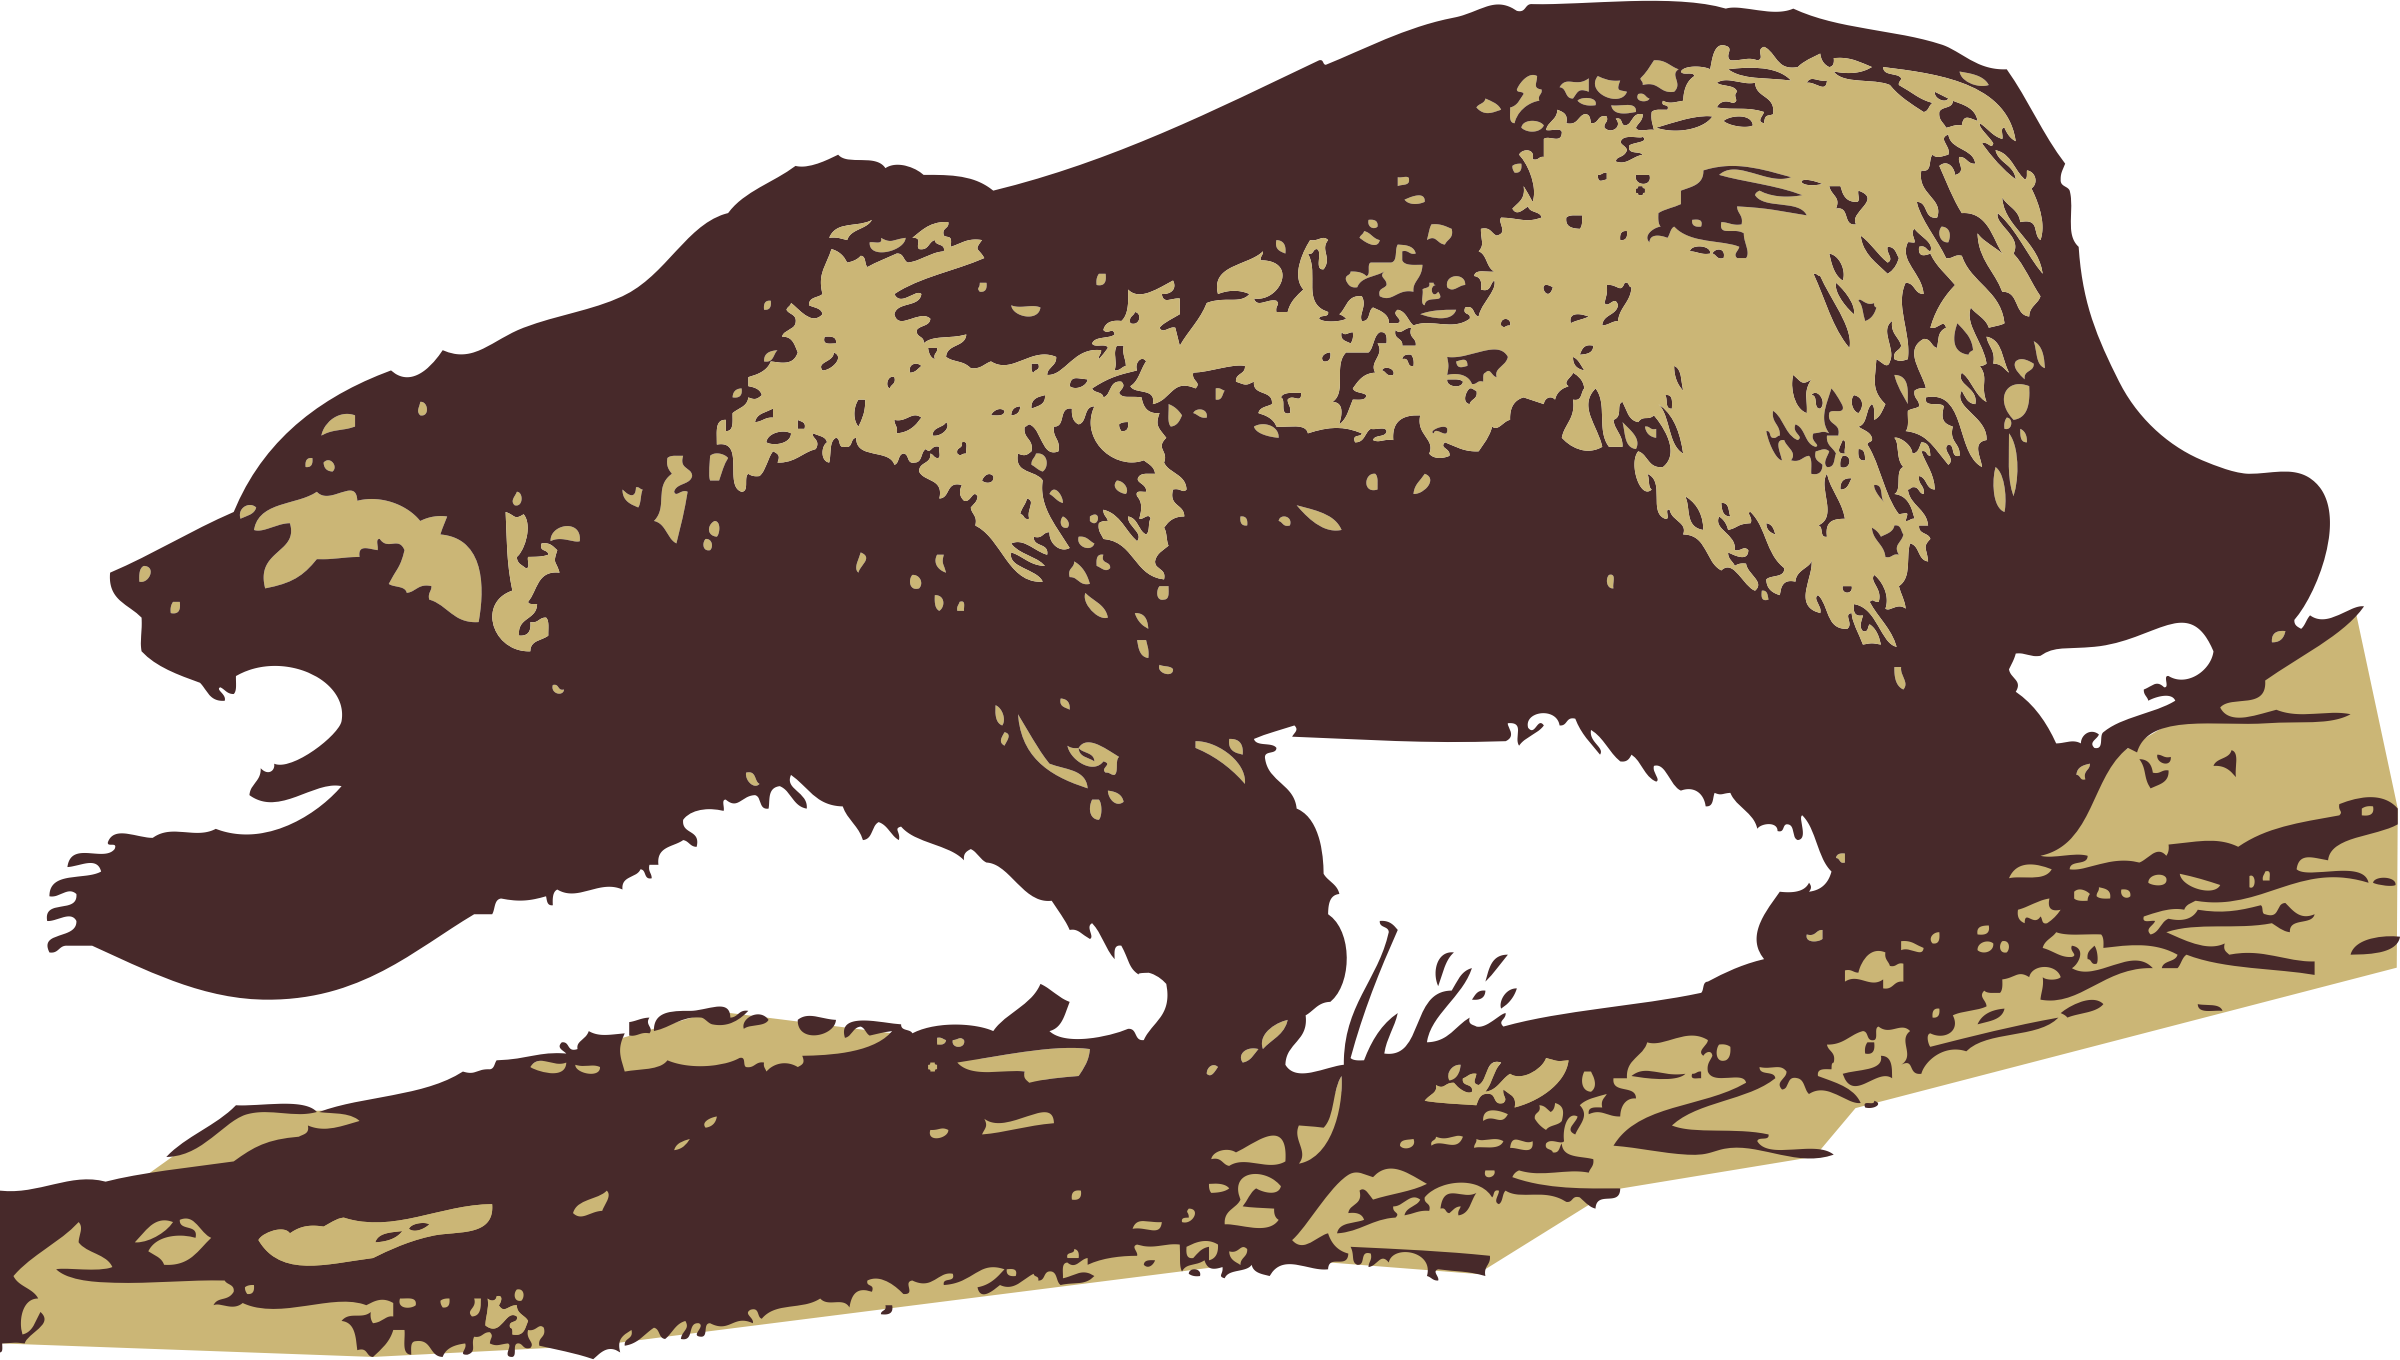 Attacking big image png. Head clipart brown bear